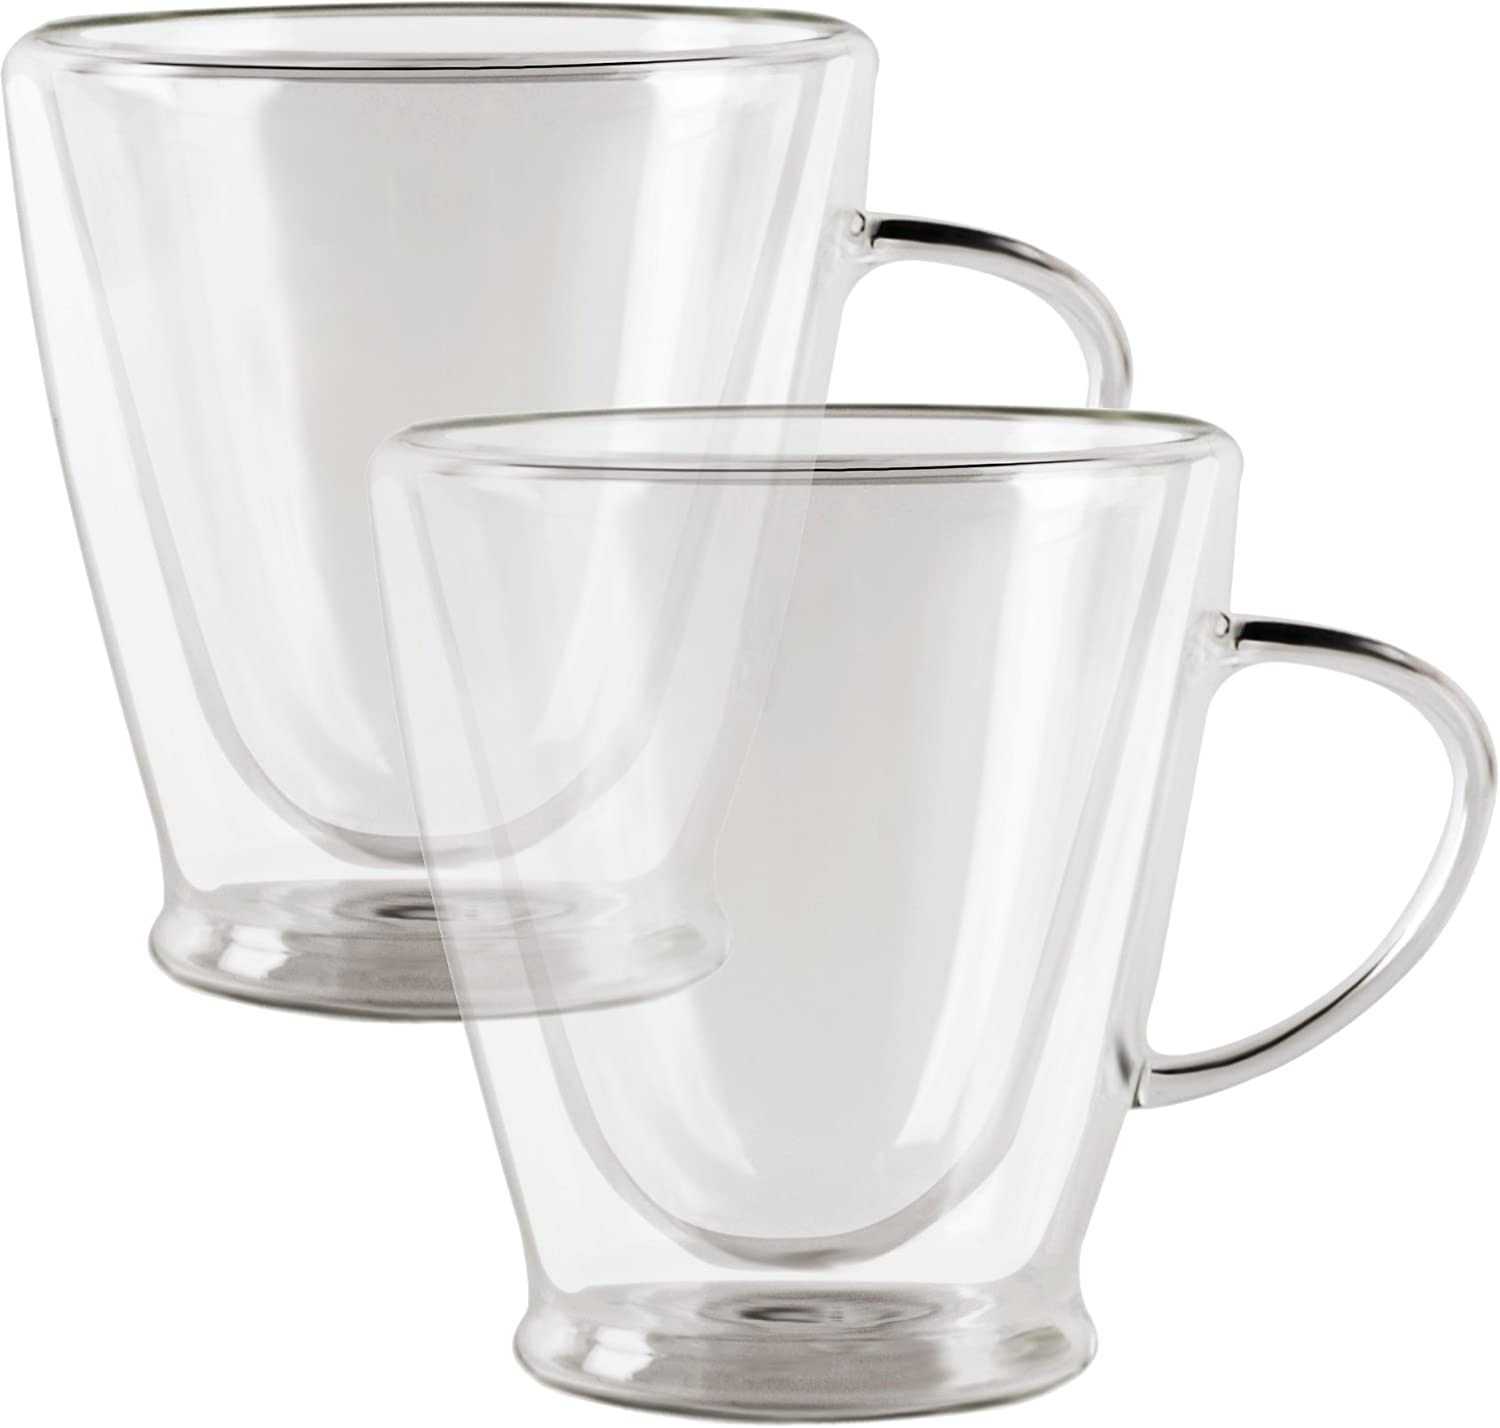 Circleware Thermax Double Wall Insulated Heat Resistant Glass Coffee Mugs with Handle, Beverage Drinking Home Kitchen Entertaining Tea Cappuccino Espresso Shots Glassware Cup, 8 oz 2-pc Set Tall